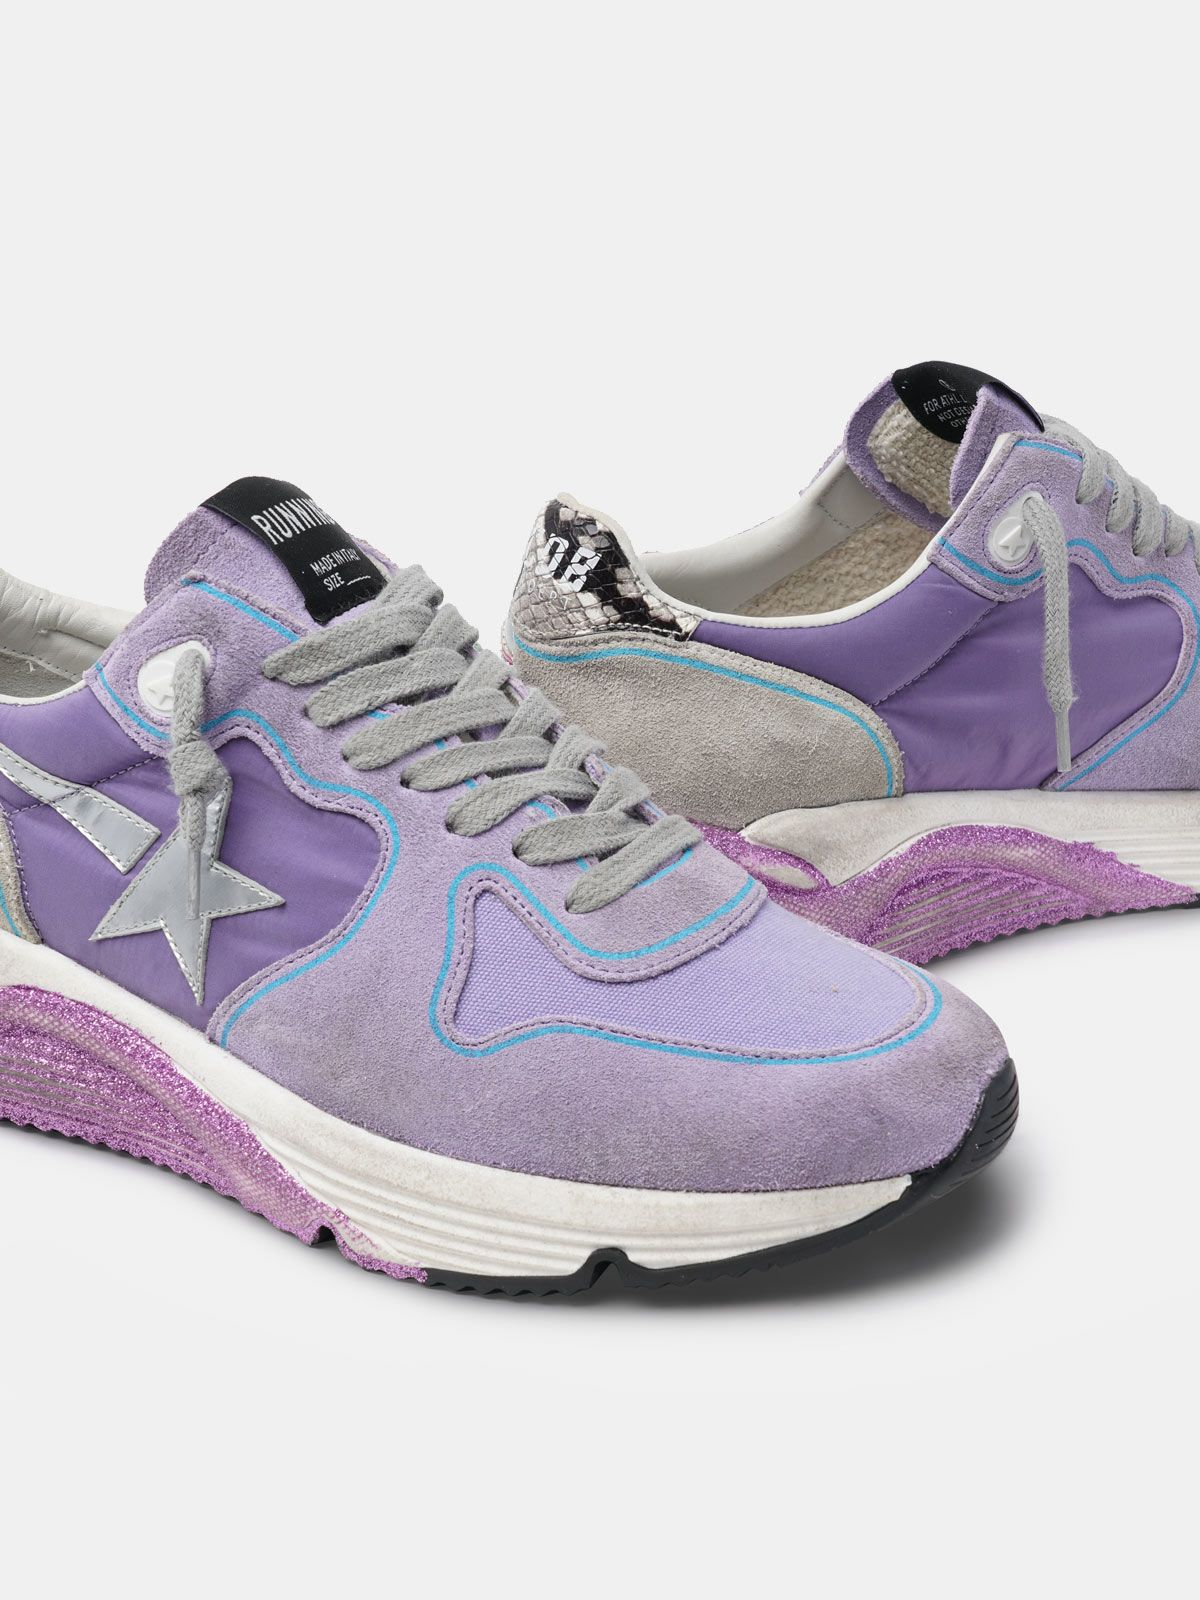 Golden Goose - Lavender Running Sole sneakers with glittery sole and silver star in